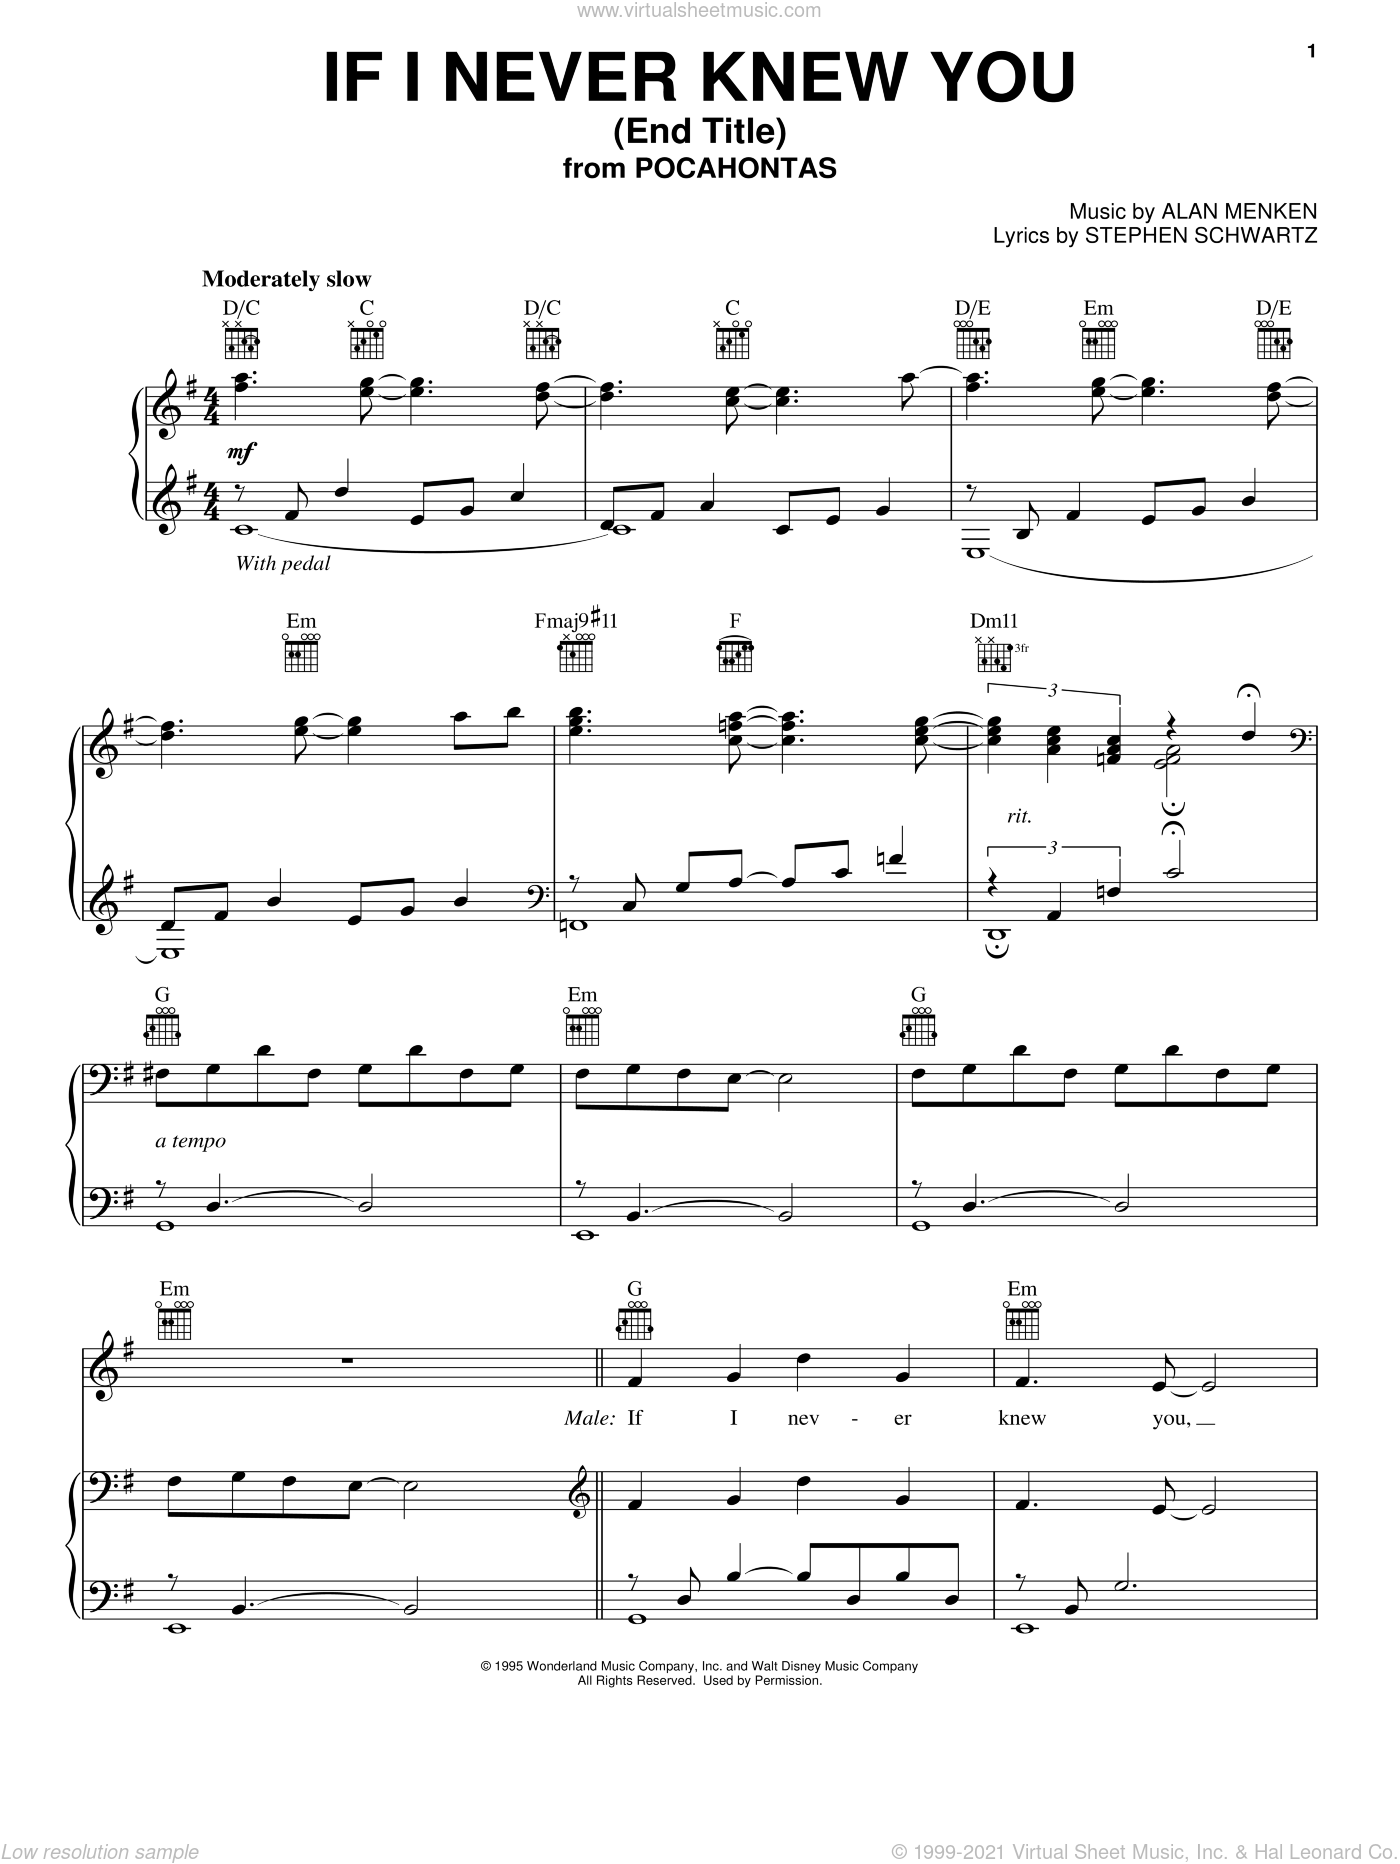 If I Never Knew You (Love Theme from POCAHONTAS) sheet music for voice, piano or guitar by Jon Secada, Shanice, Alan Menken and Stephen Schwartz. Score Image Preview.